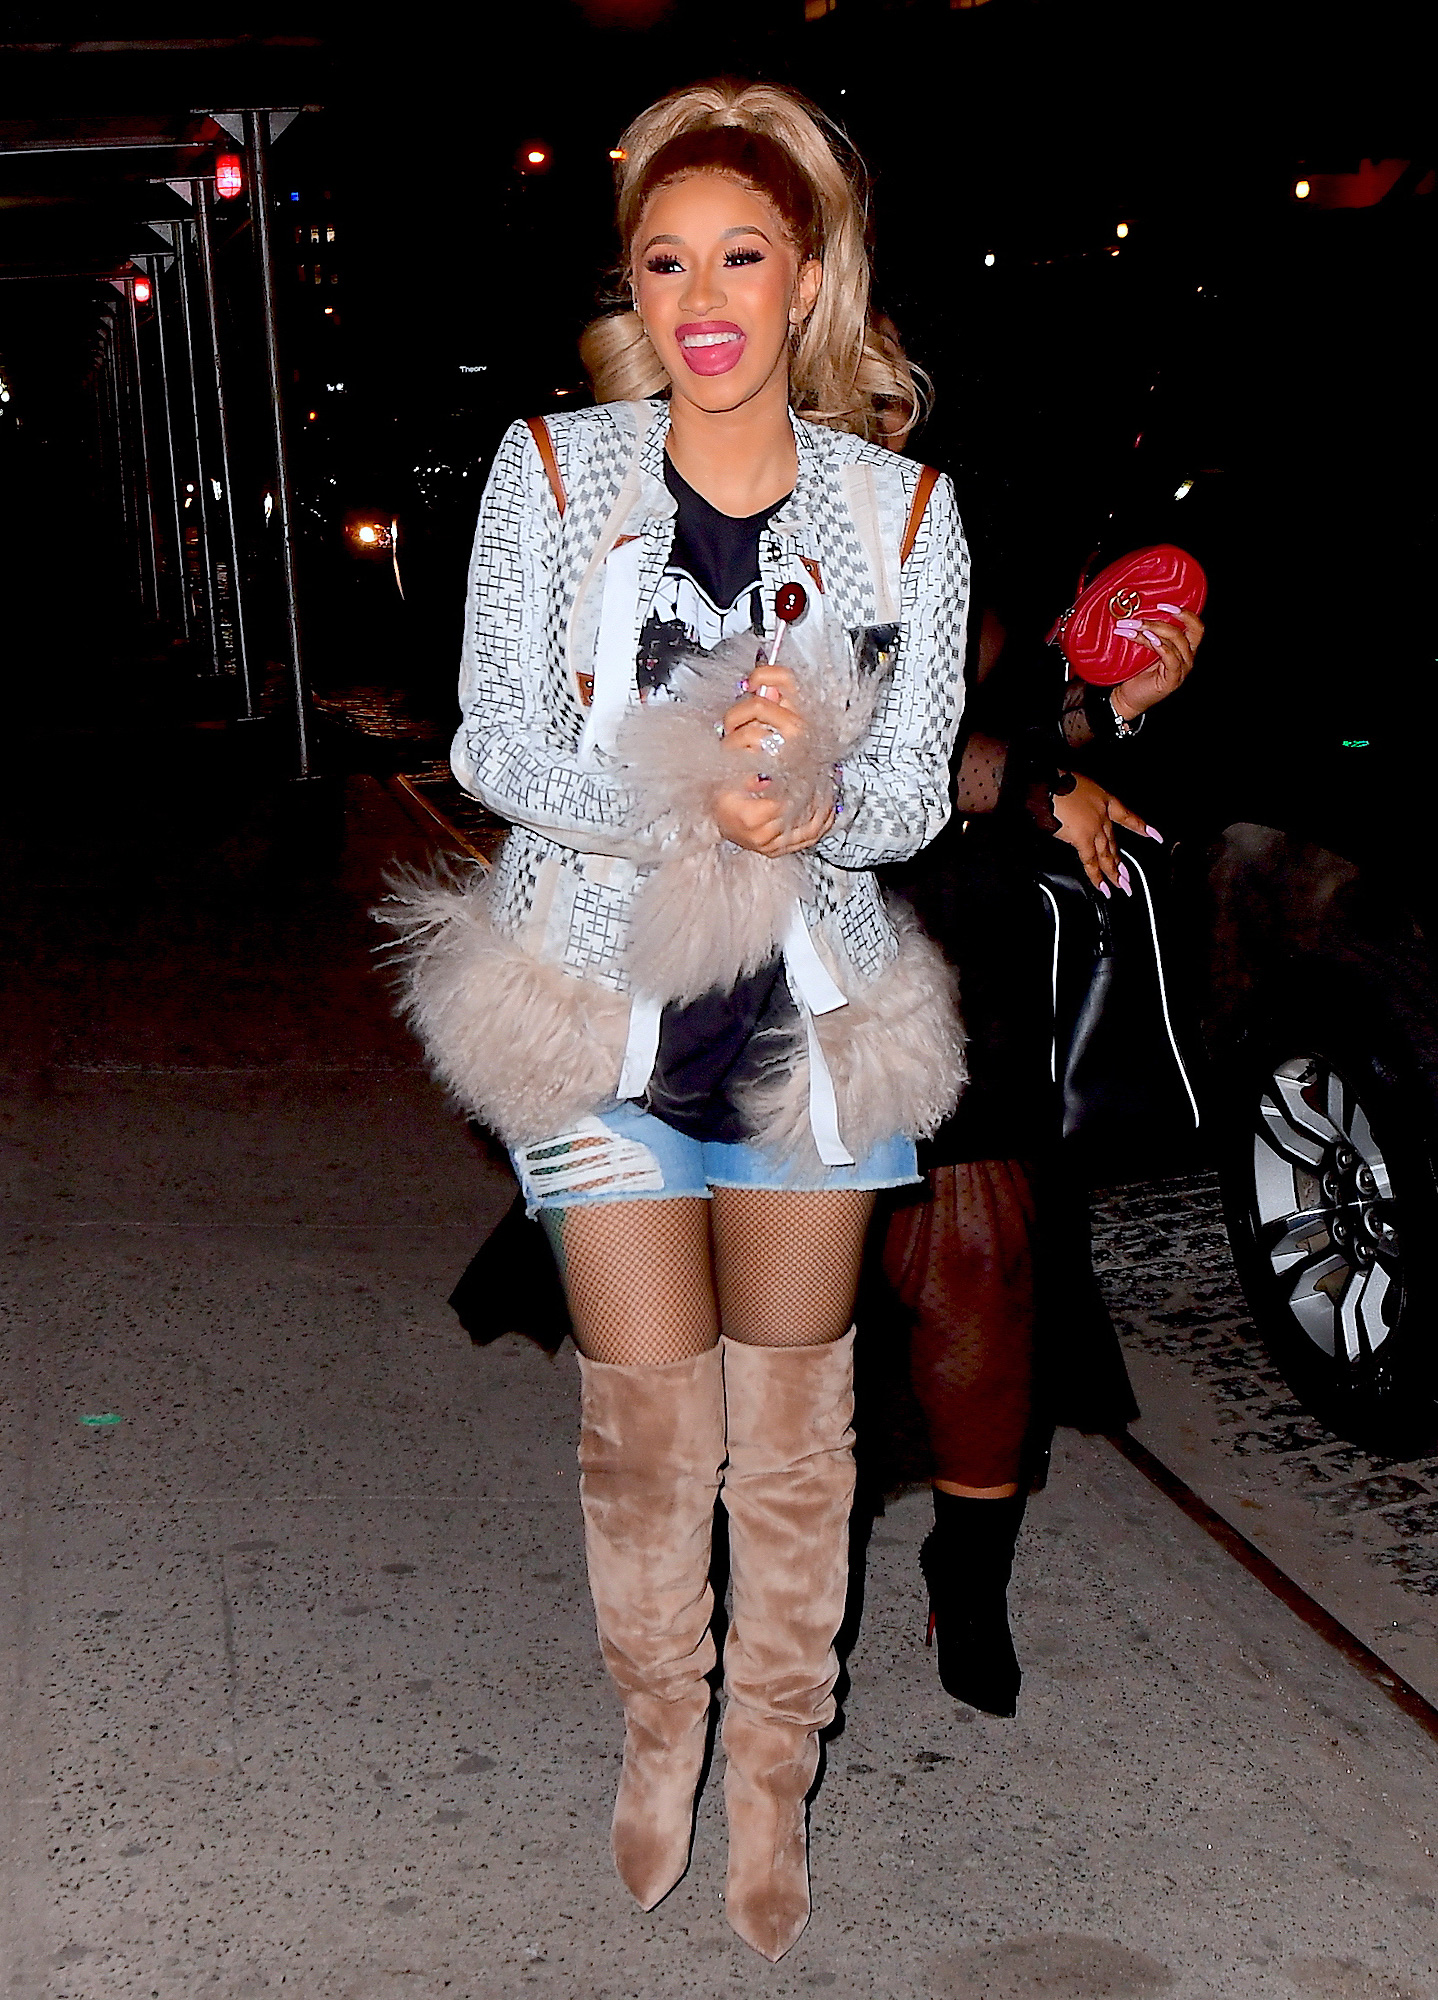 Cardi B Covers What Appears to Be a Baby Bump as She Celebrates Her Album Release in NYC